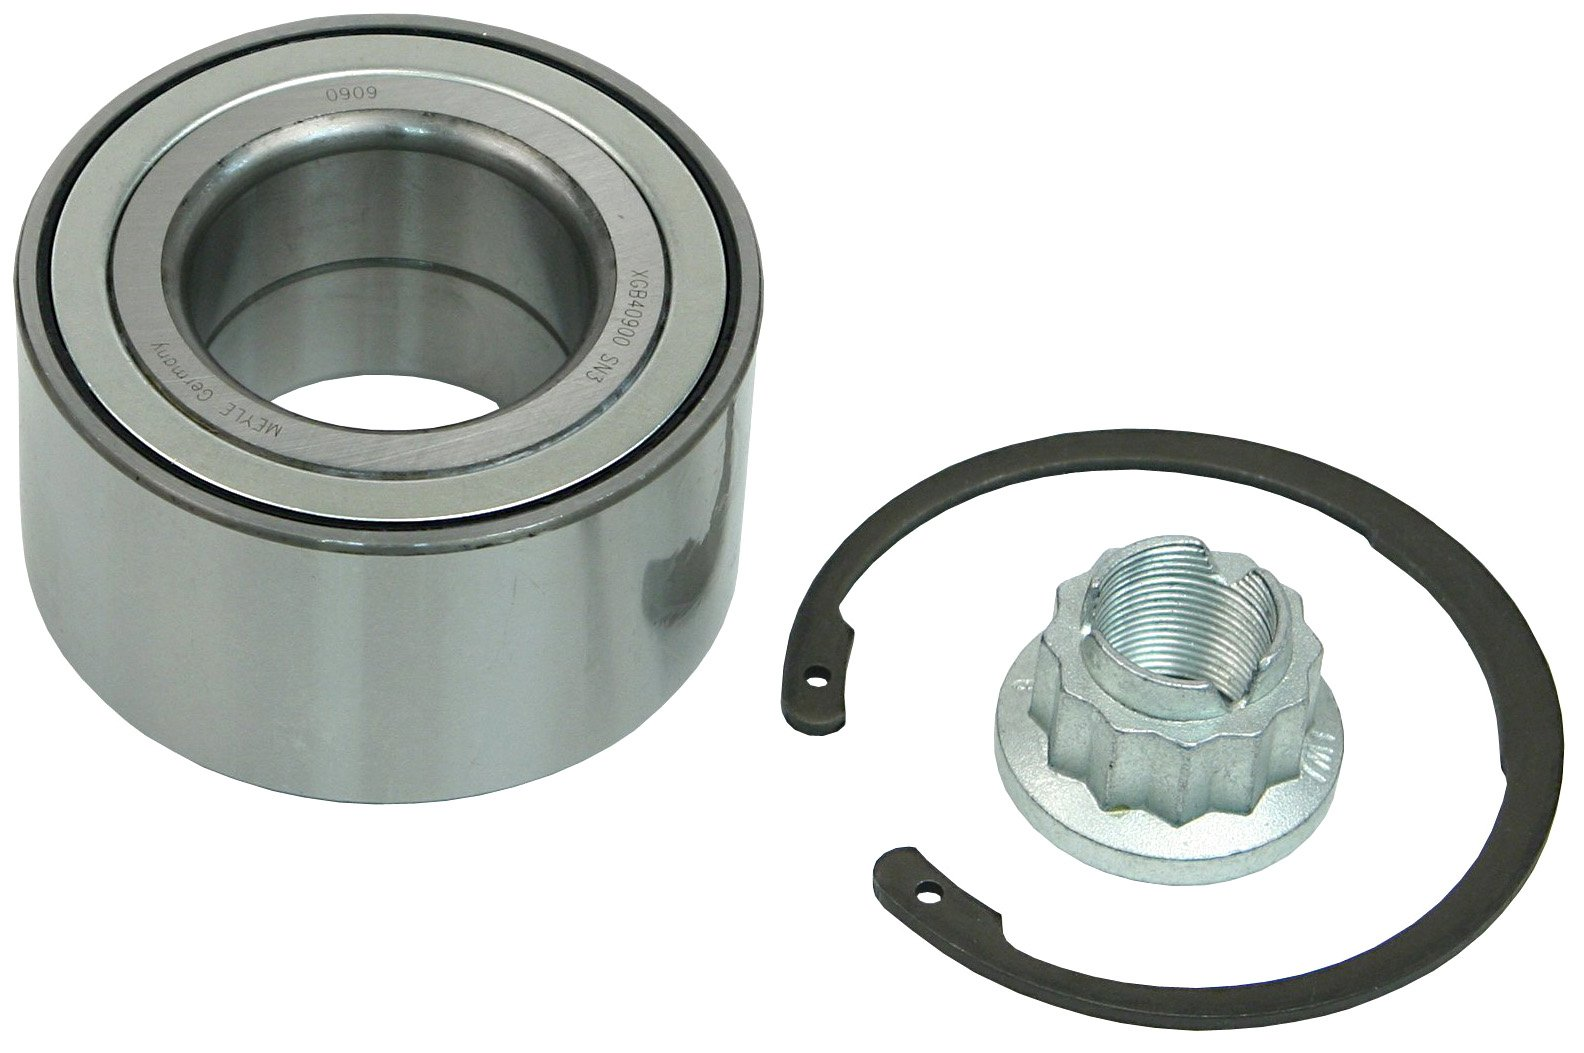 Beck Arnley 051-4206 Wheel Bearing Kit